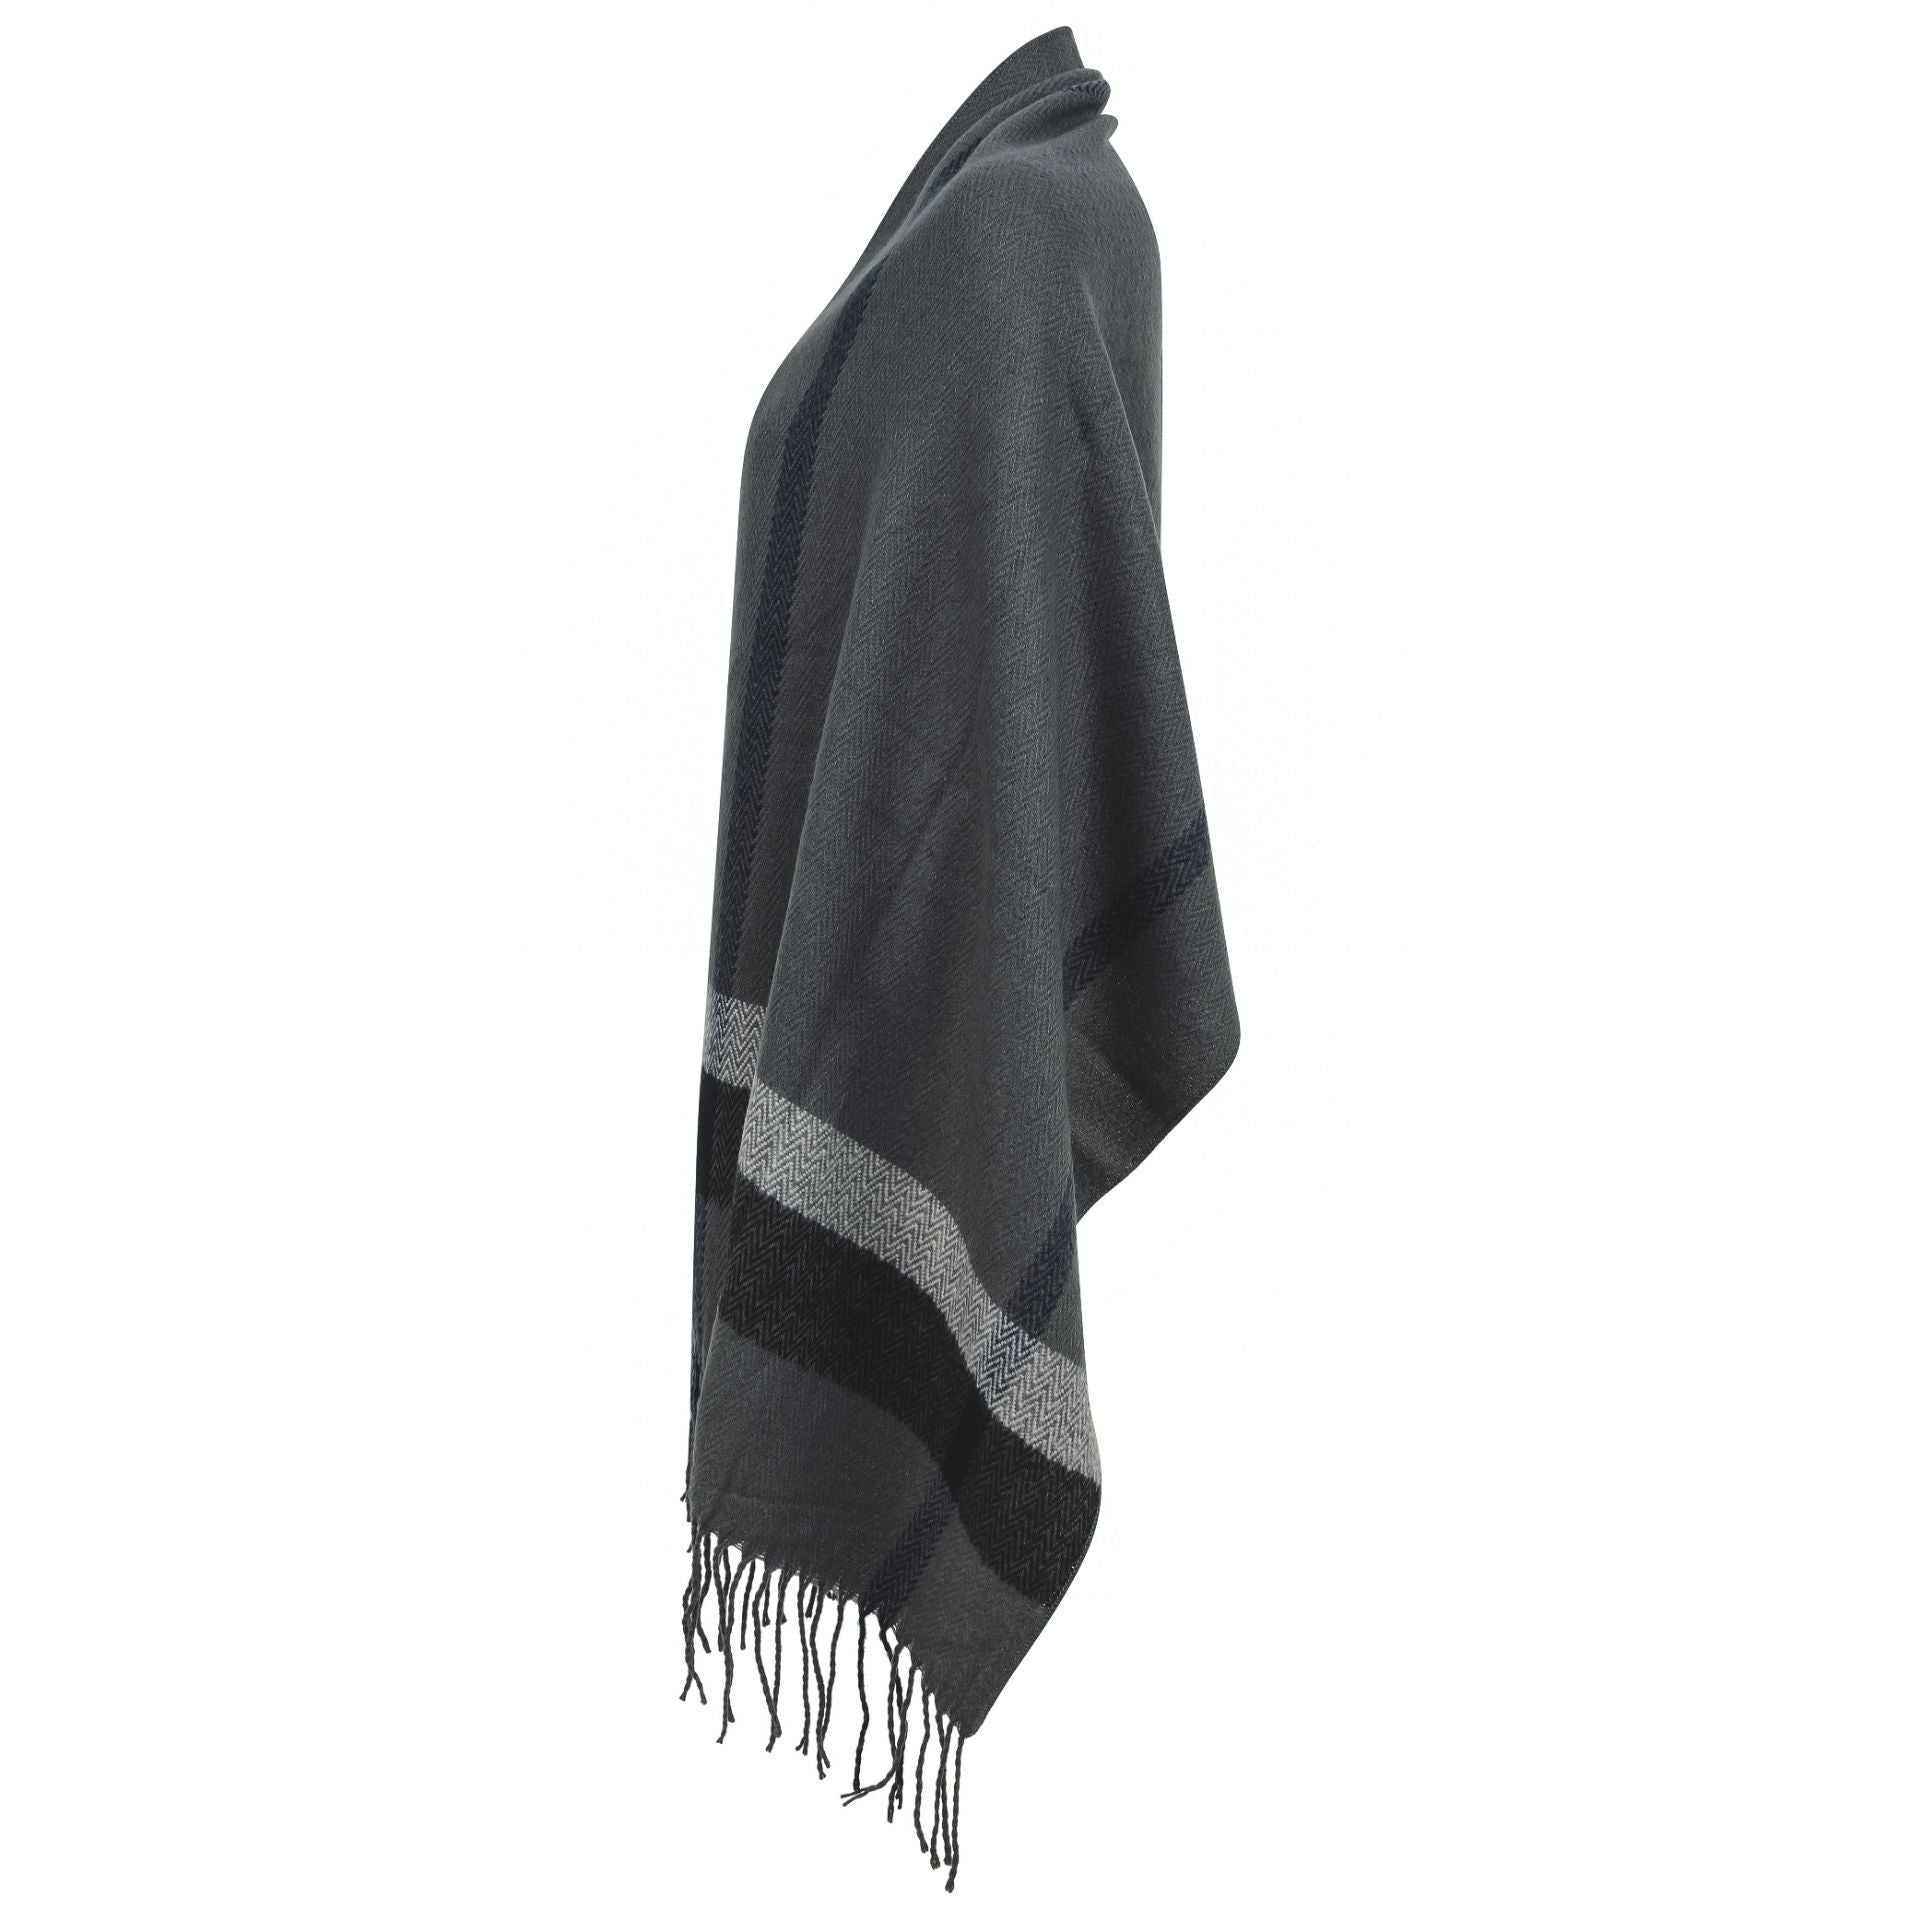 Logan Scarf - grey with black & grey border line